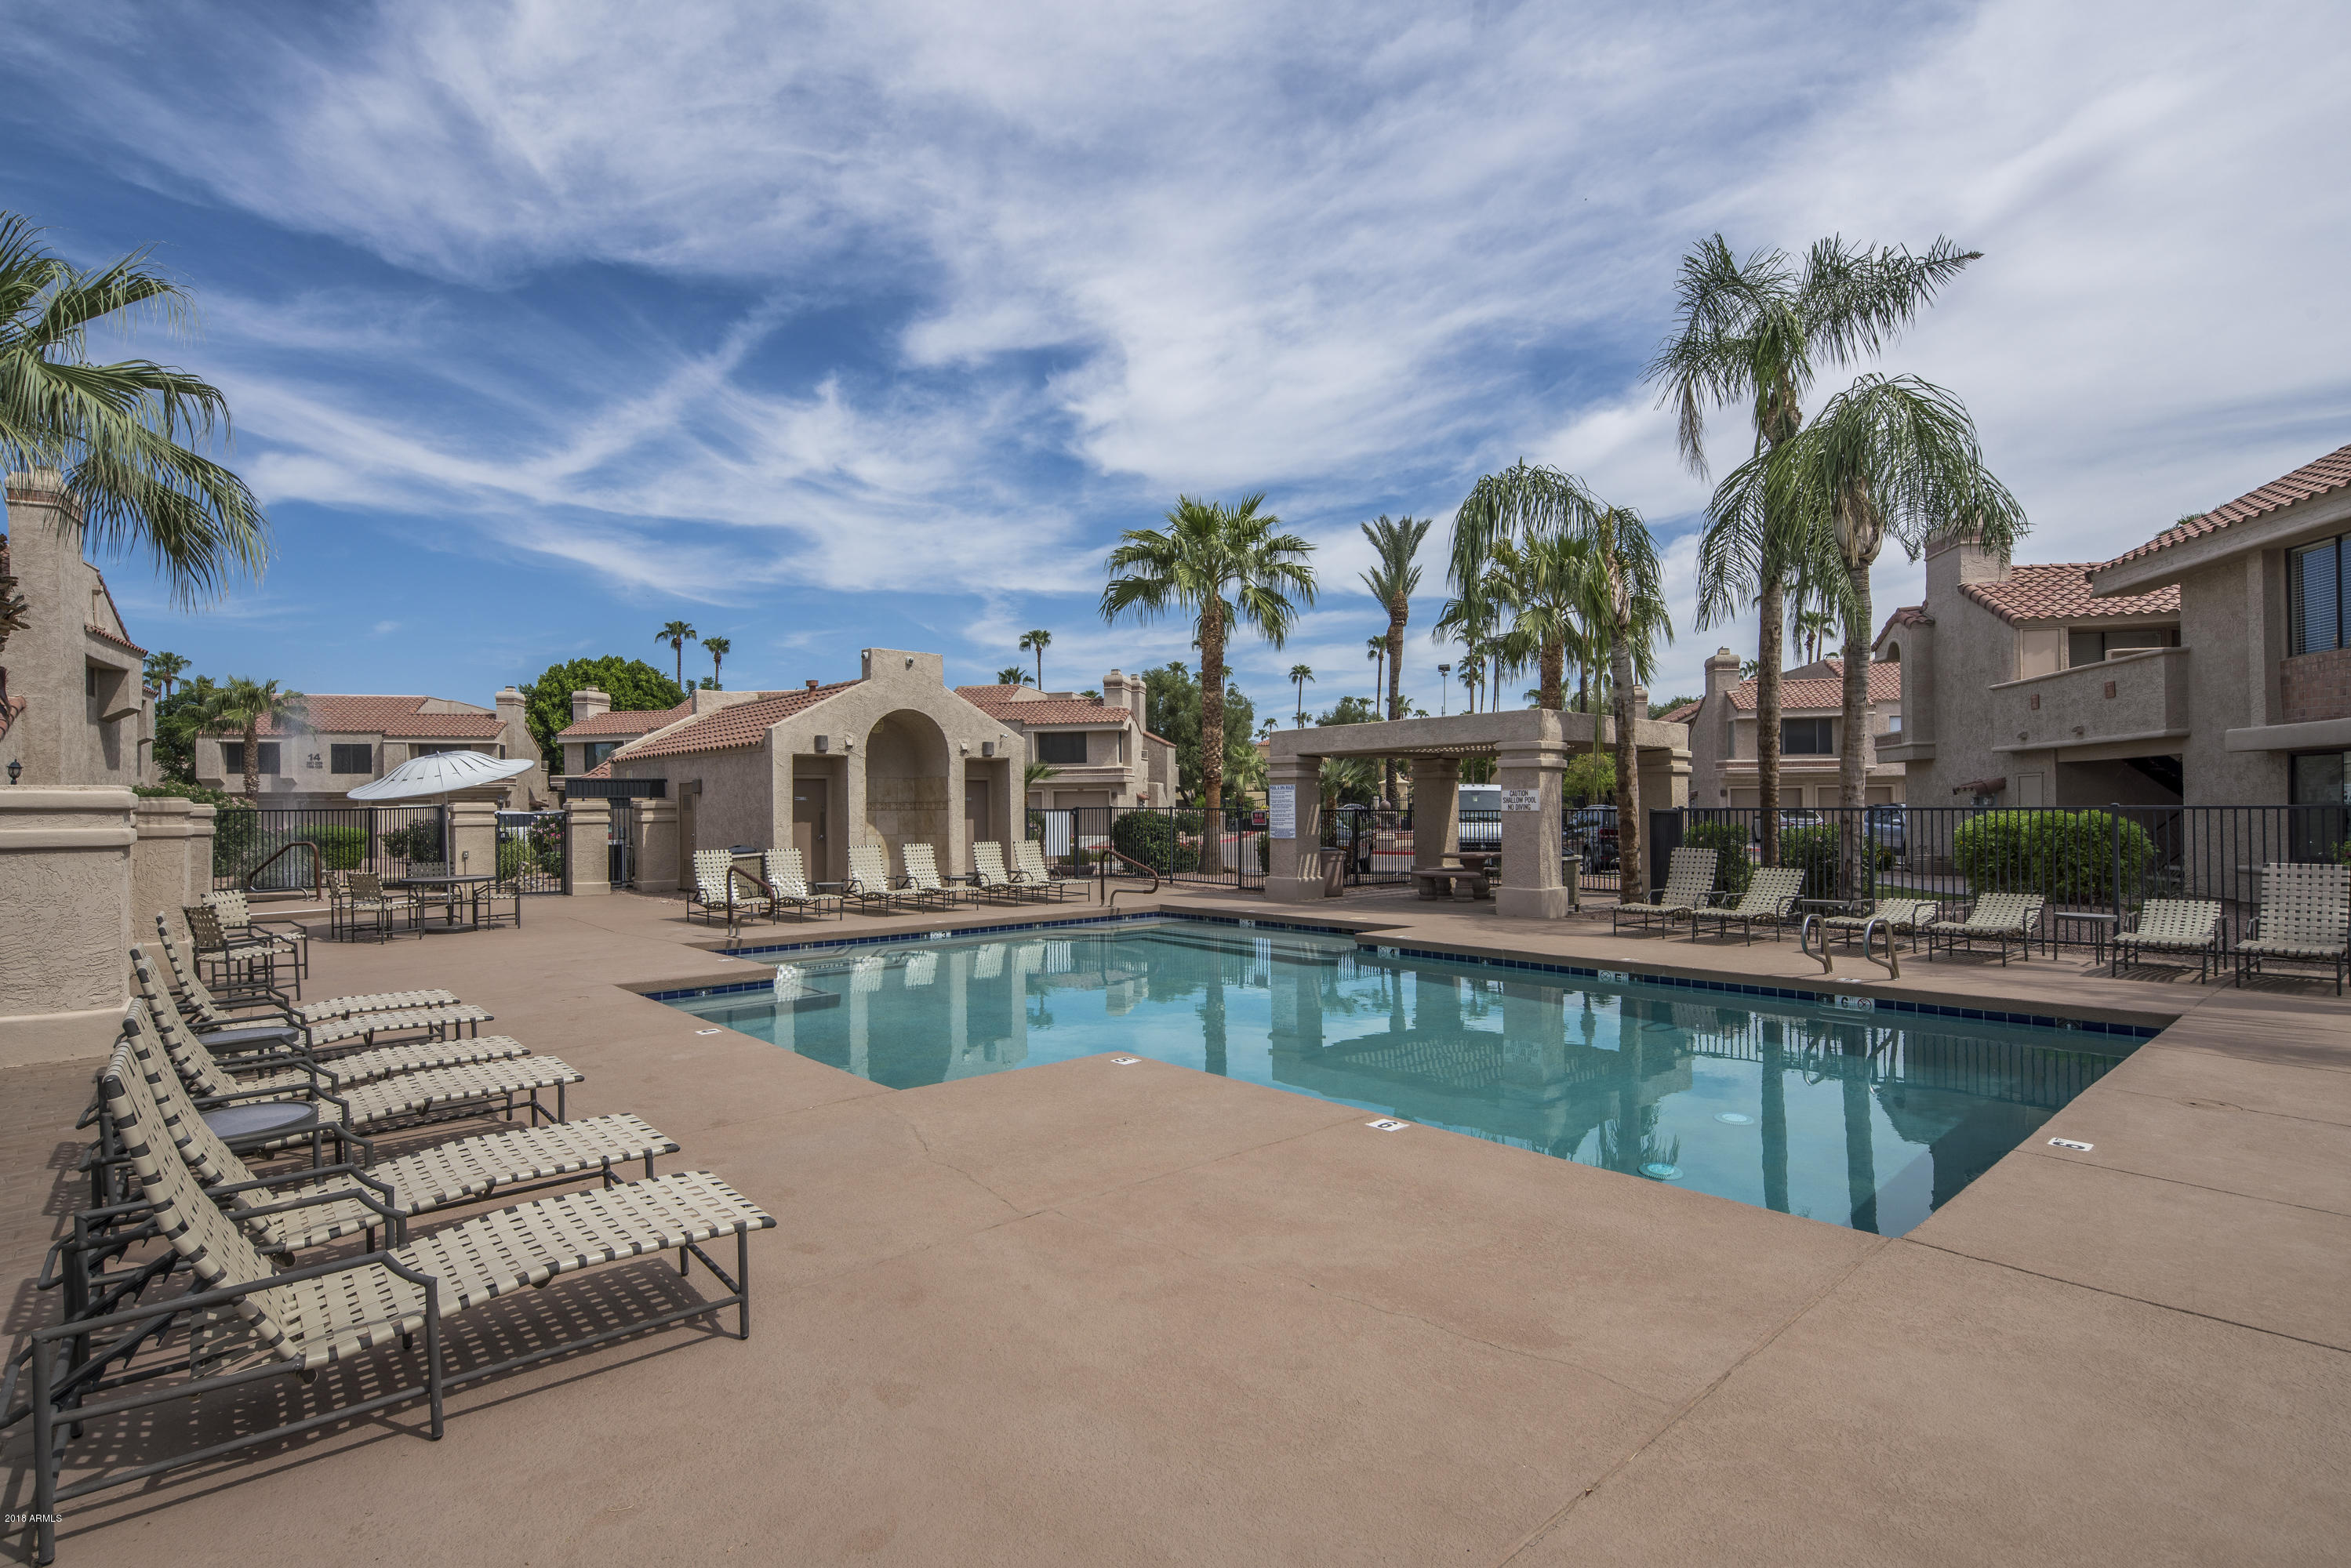 Welcome Home To The Venetian In Scottsdale! The Community Fountains And  Lush Landscape Are Truly Inviting. This Home Has Wonderful Living Space  With Vaulted ...